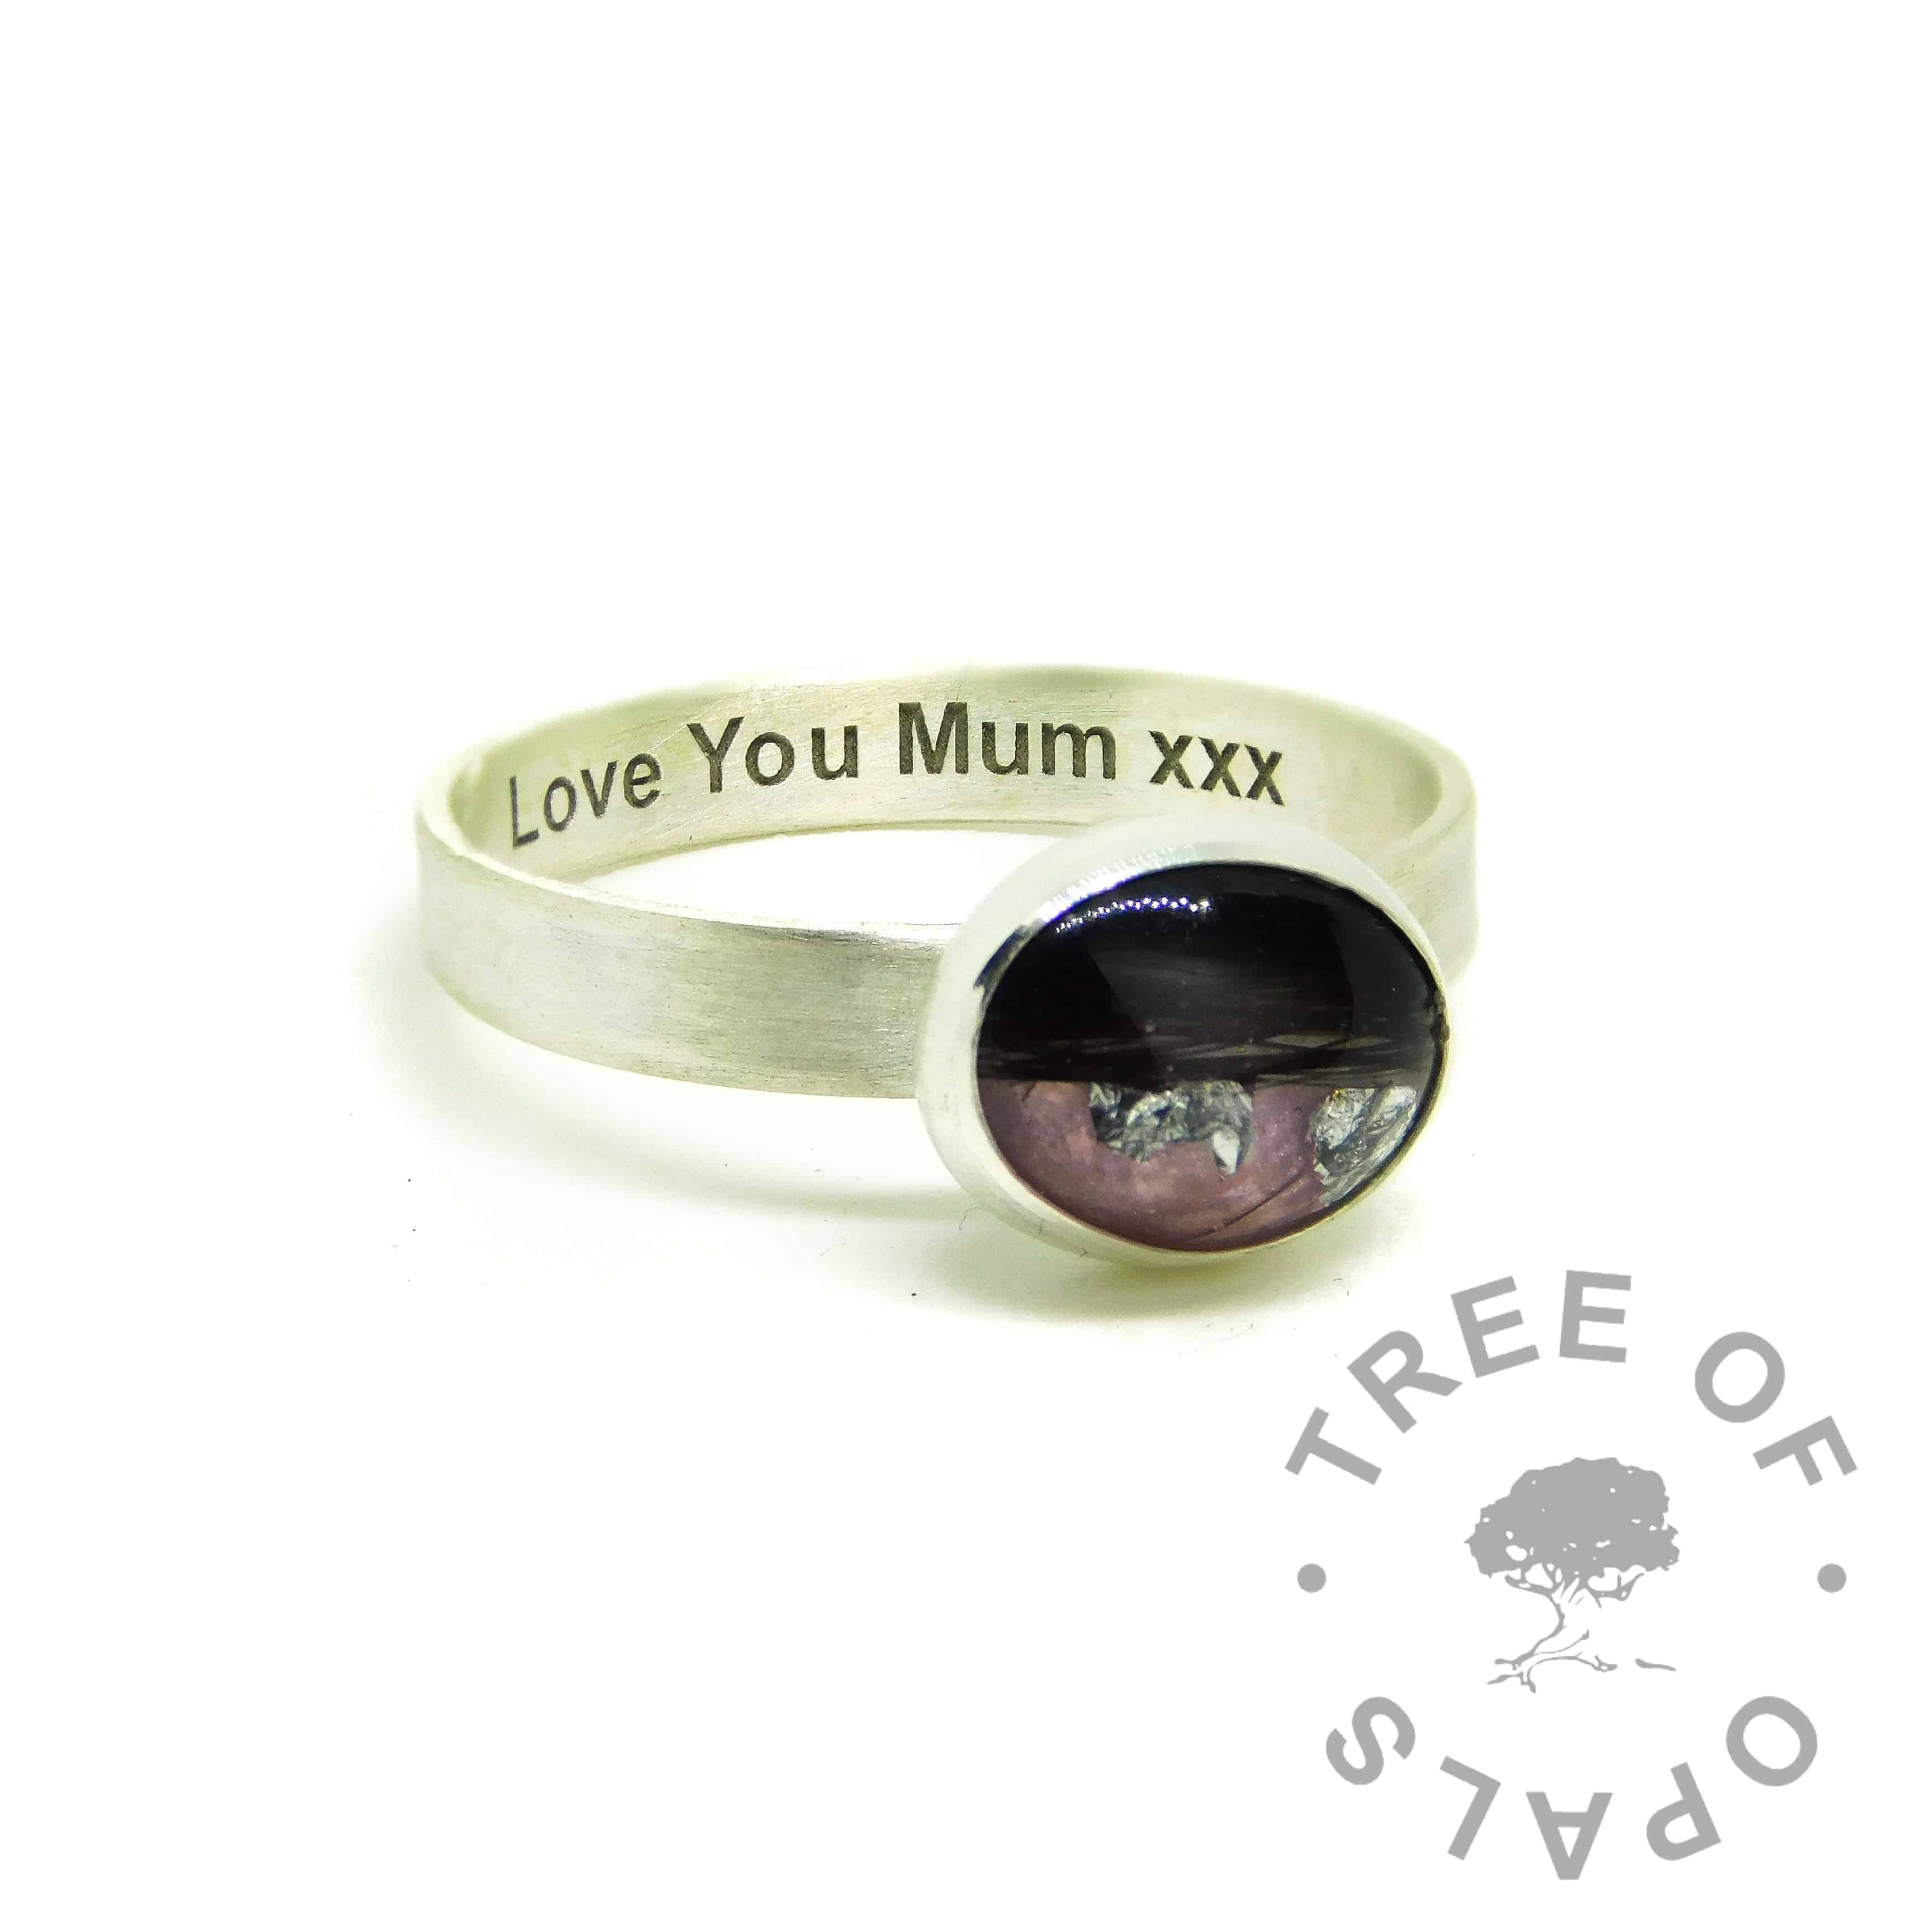 pink hair ring, lock of hair ring on brushed band with Arial font engraving on the inside. Fairy pink resin sparkle mix with silver precious metal leaf add-on